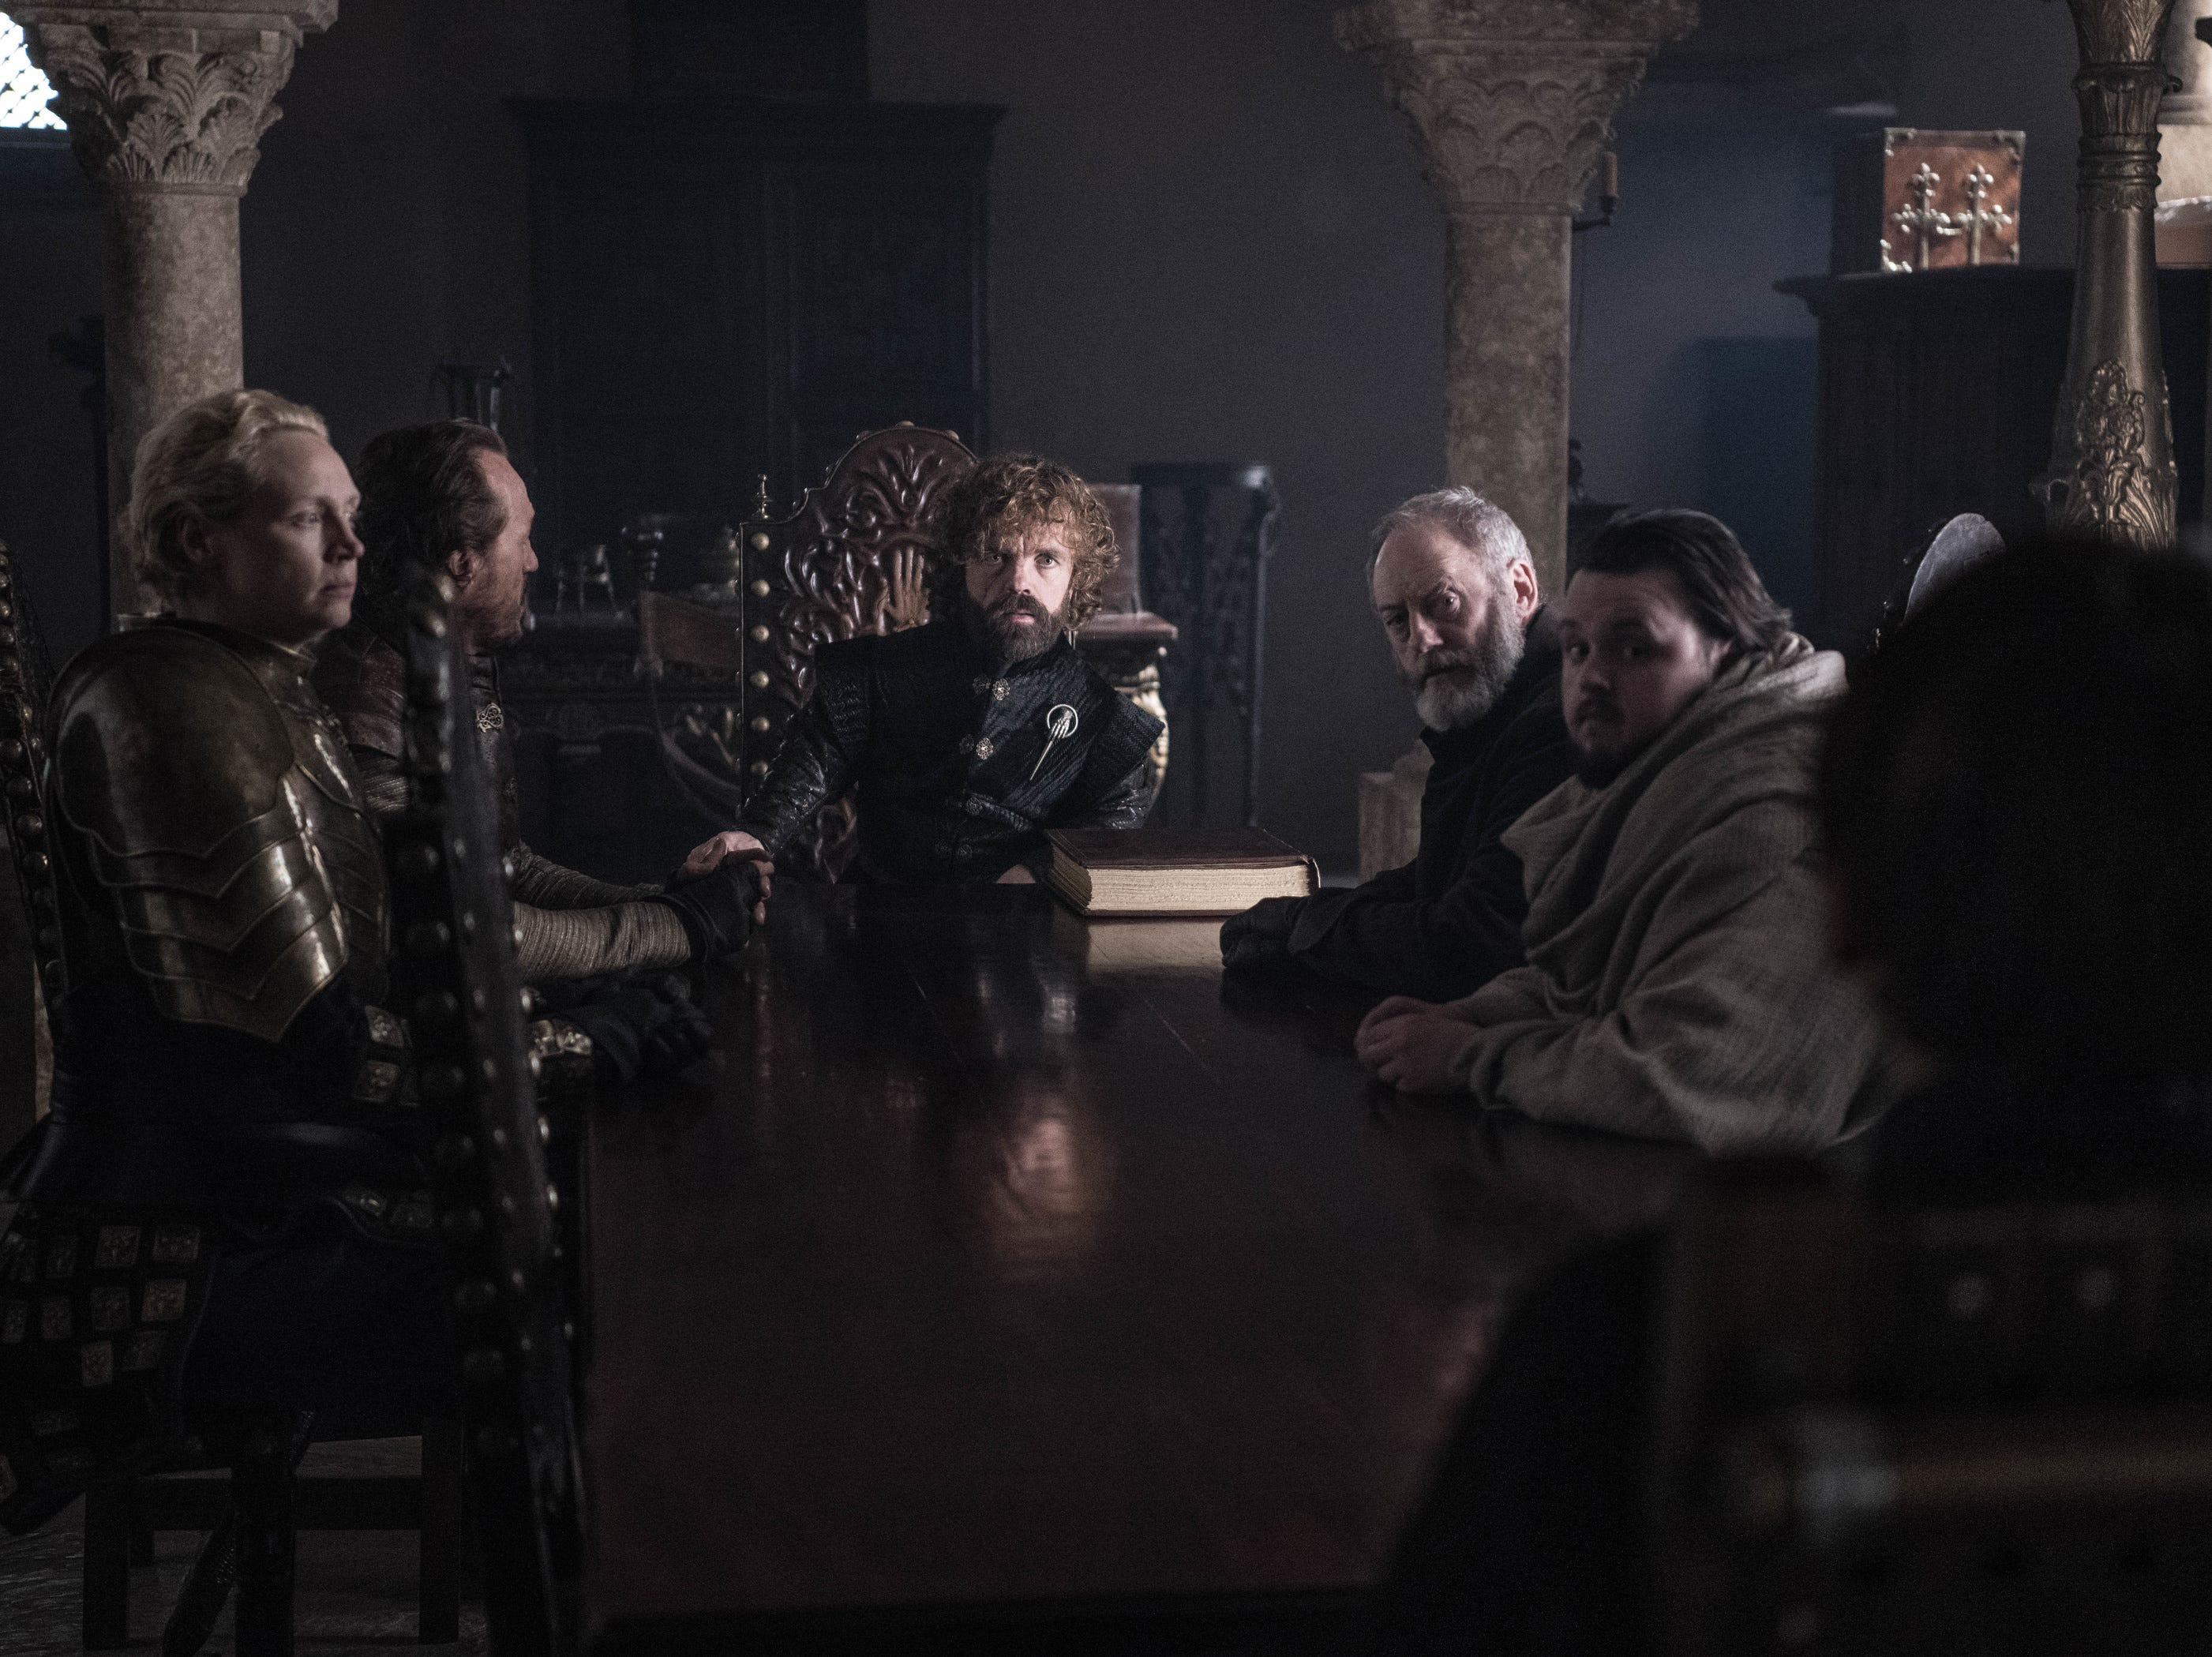 Under new management: Brienne (Gwendoline Christie), left, Bronn (Jerome Flynn), Tyrion Lannister (Peter Dinklage), Davos Seaworth (Liam Cunningham), Samwell Tarly (John Bradley) and Bran Stark (Isaac Hempstead Wright) hold a meeting.